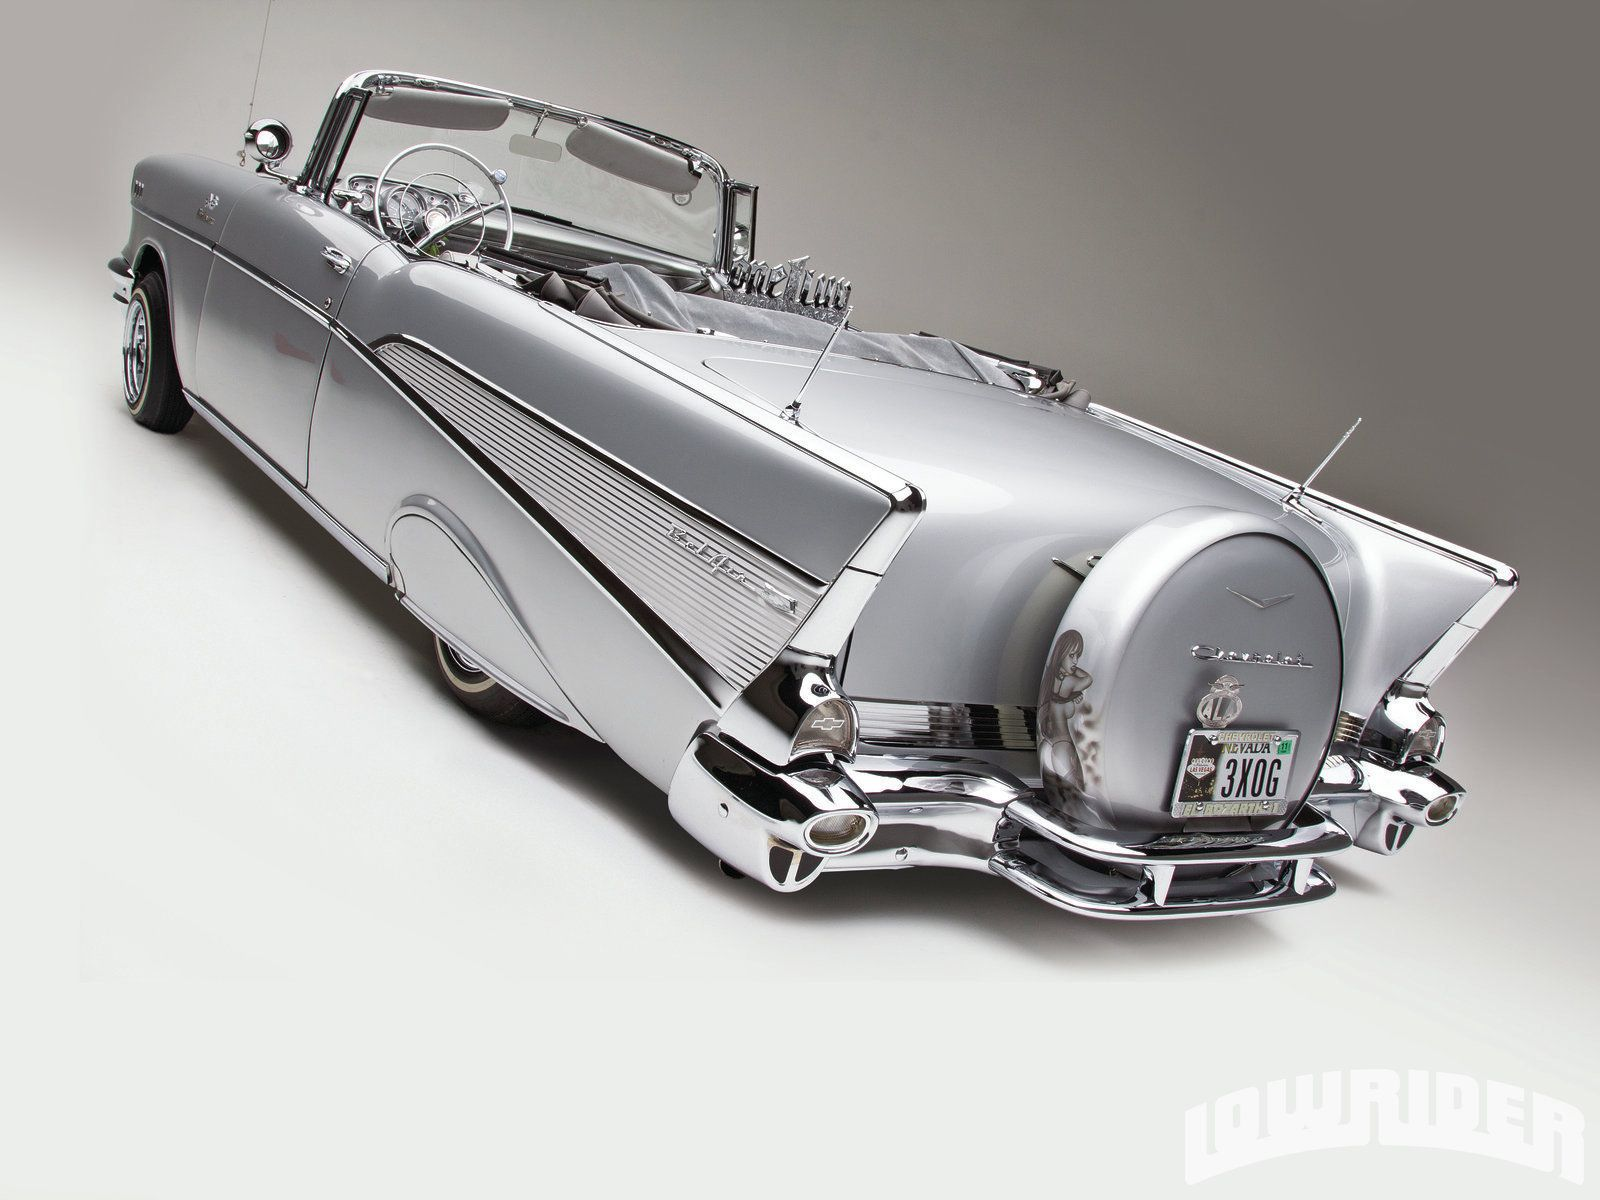 1957 Chevrolet Bel Air Lowrider Magazine Cars I Love